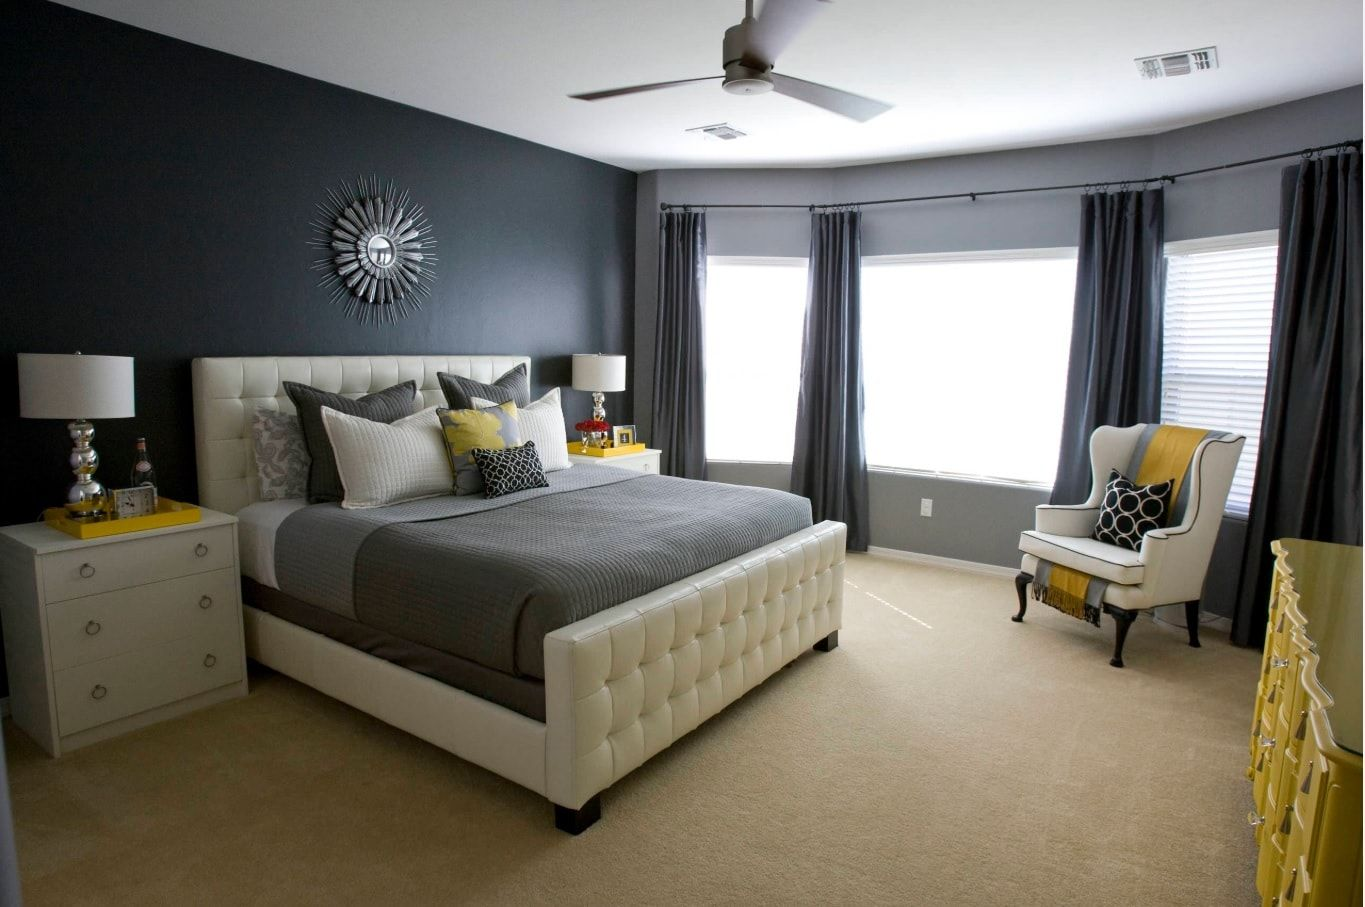 10 Top Secret Decorating Tips for Selling Your Home. Quilted creamy colored legboard in the gray colored bedroom